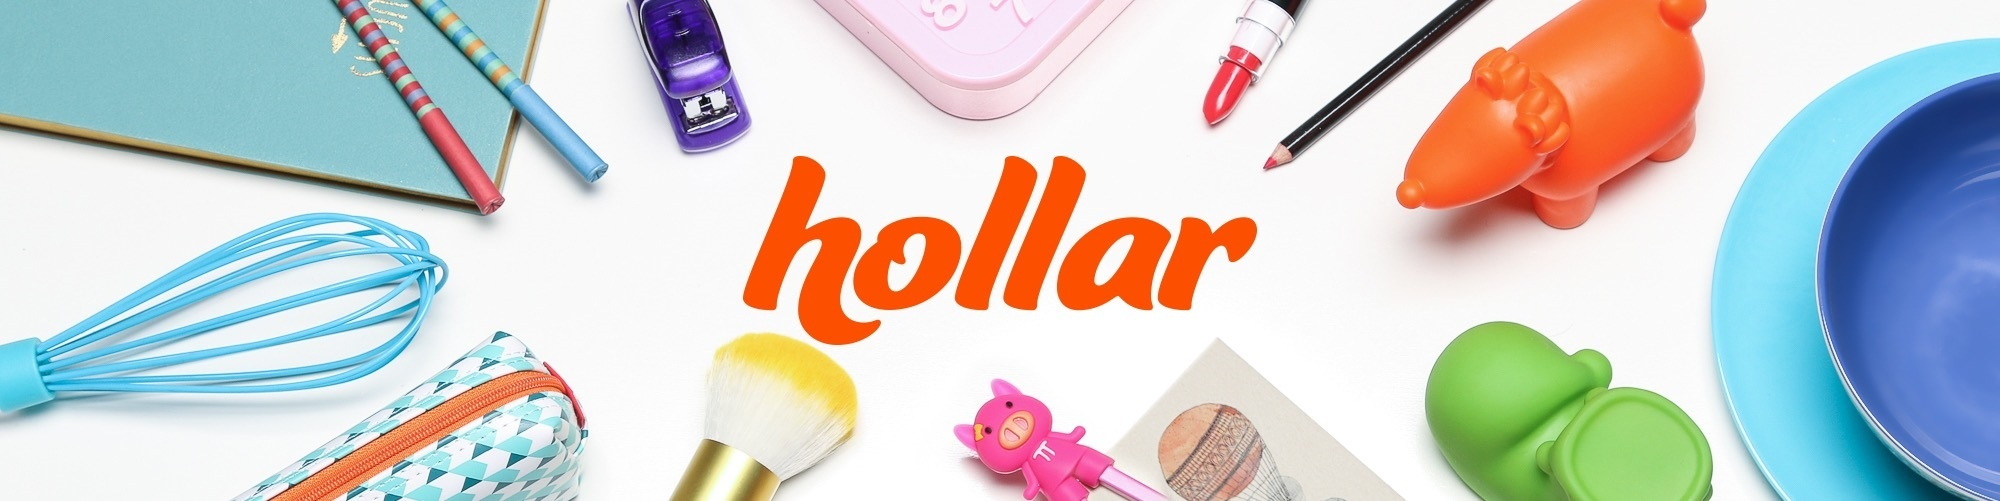 Find out about how Internet retailer Hollar leveraged WMS adaptability